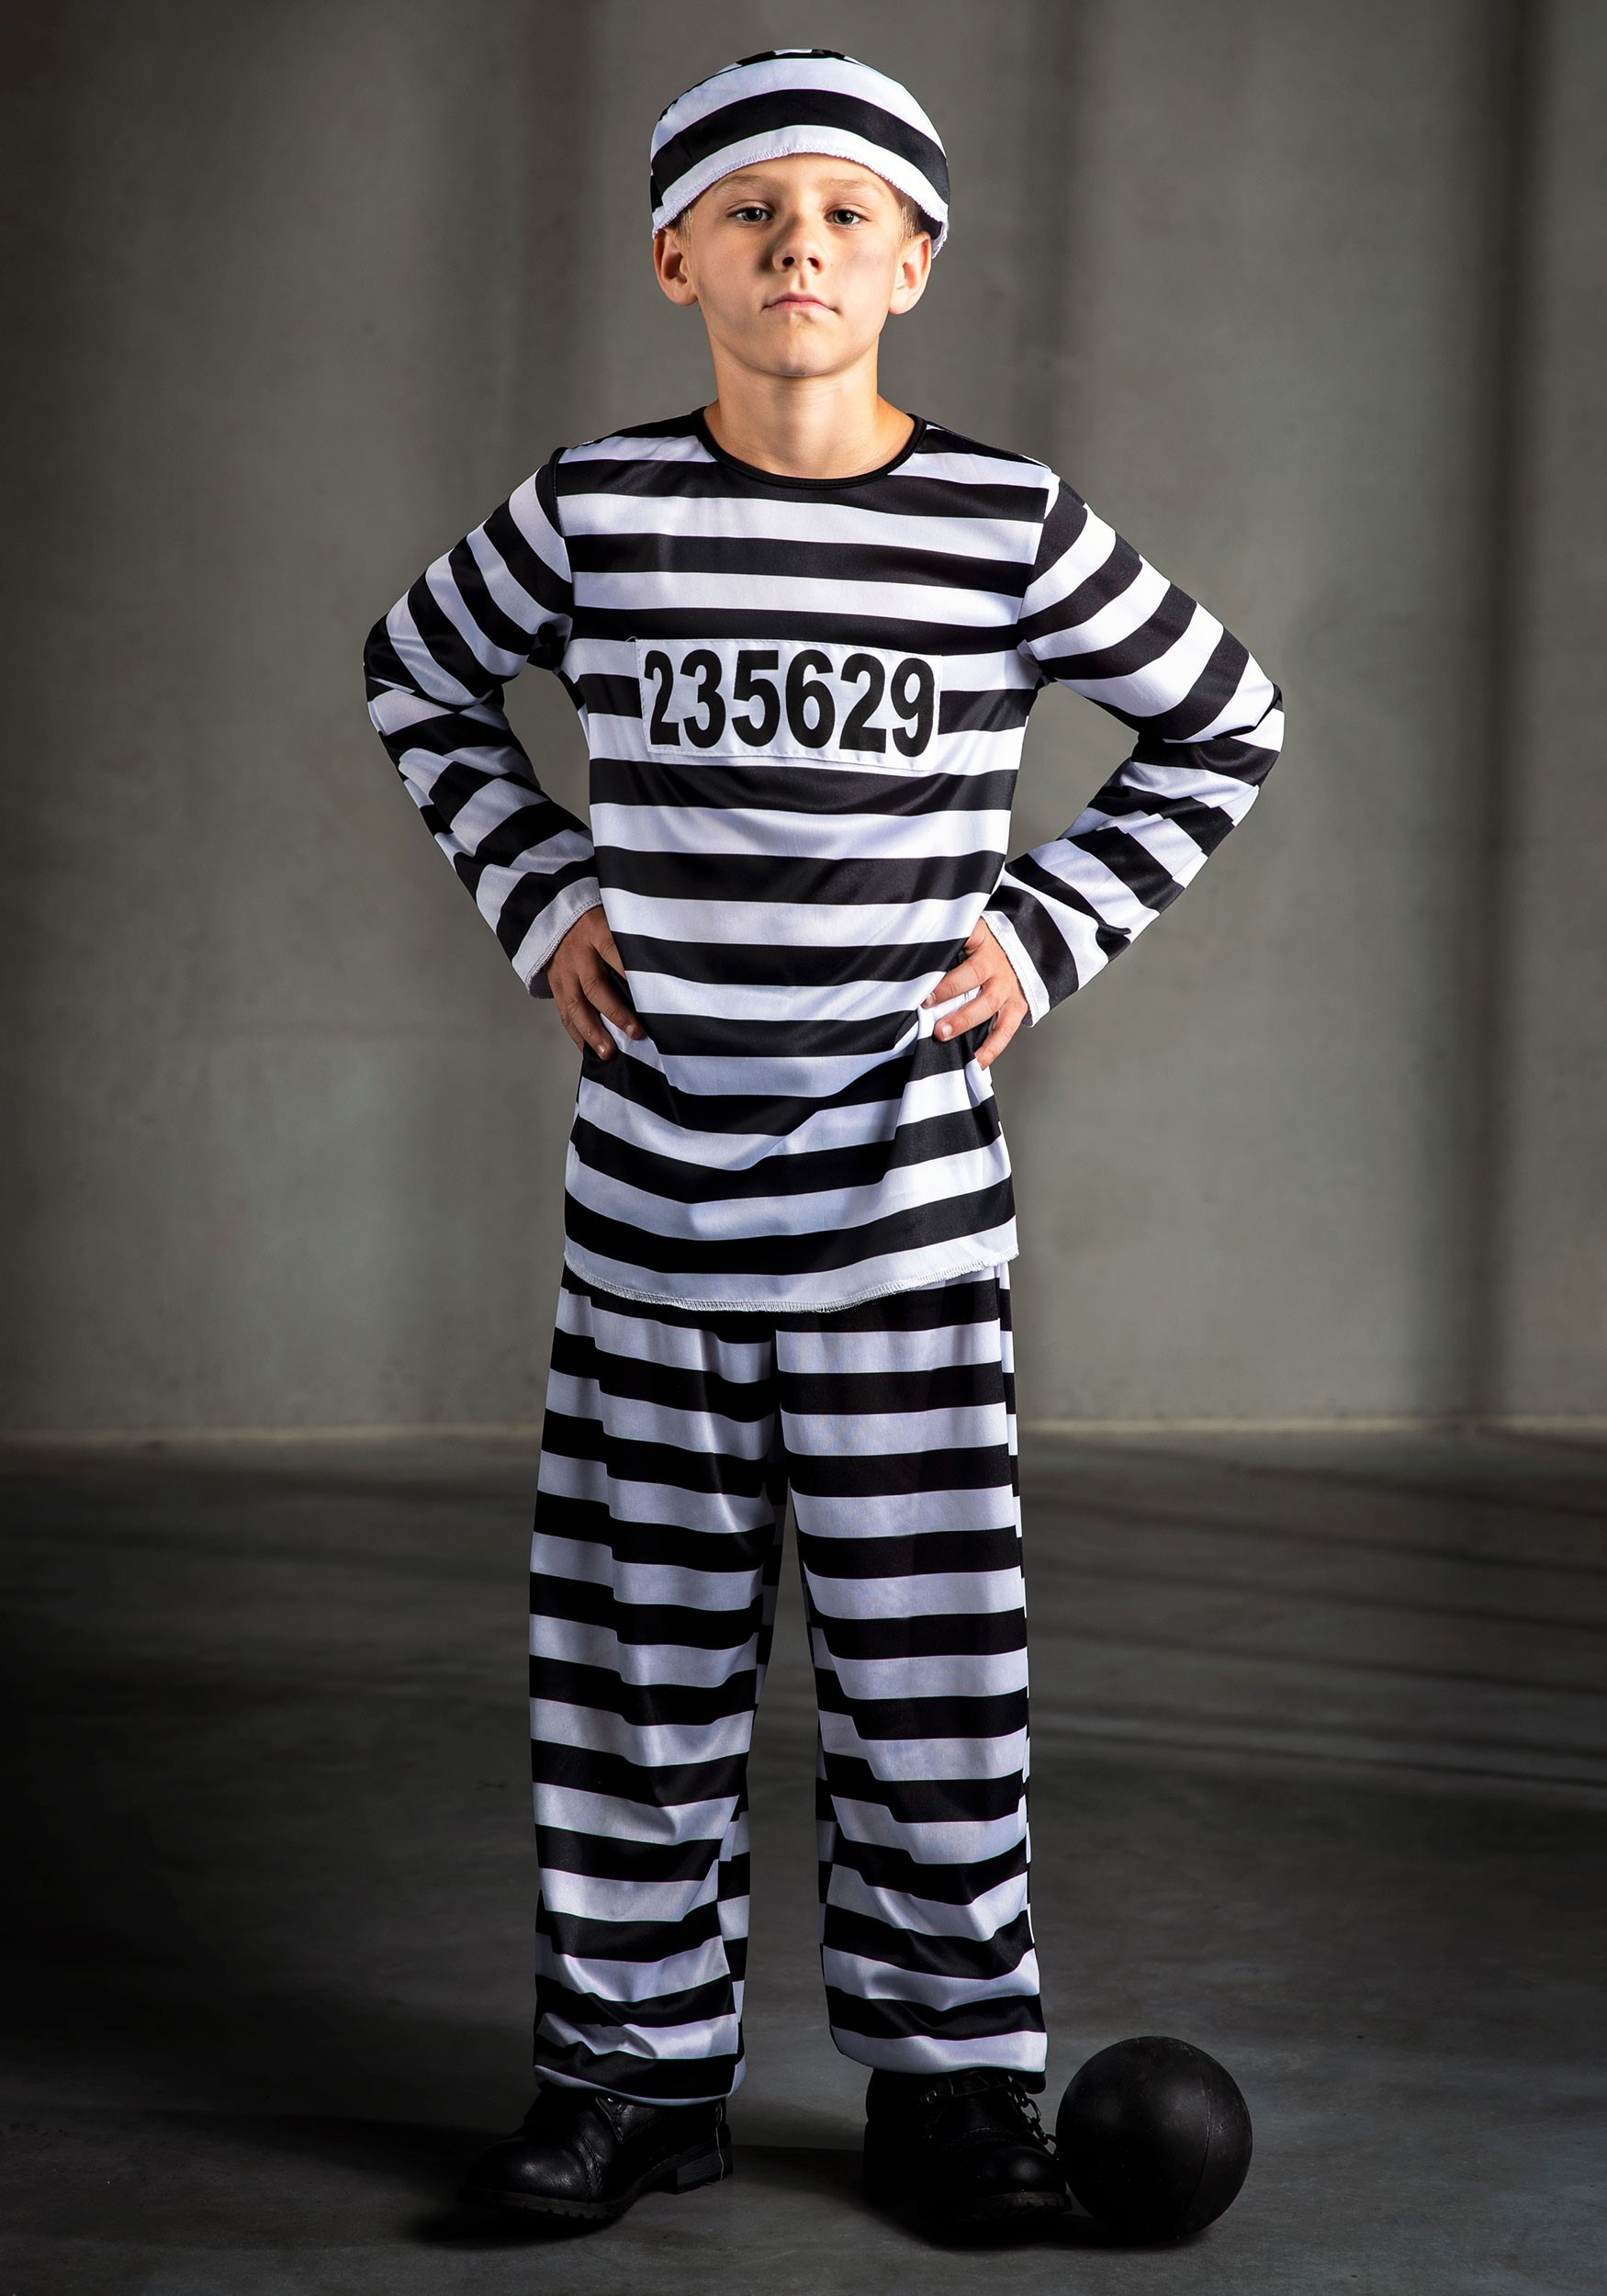 sc 1 st  Halloween Costumes & Boys Prisoner Costume